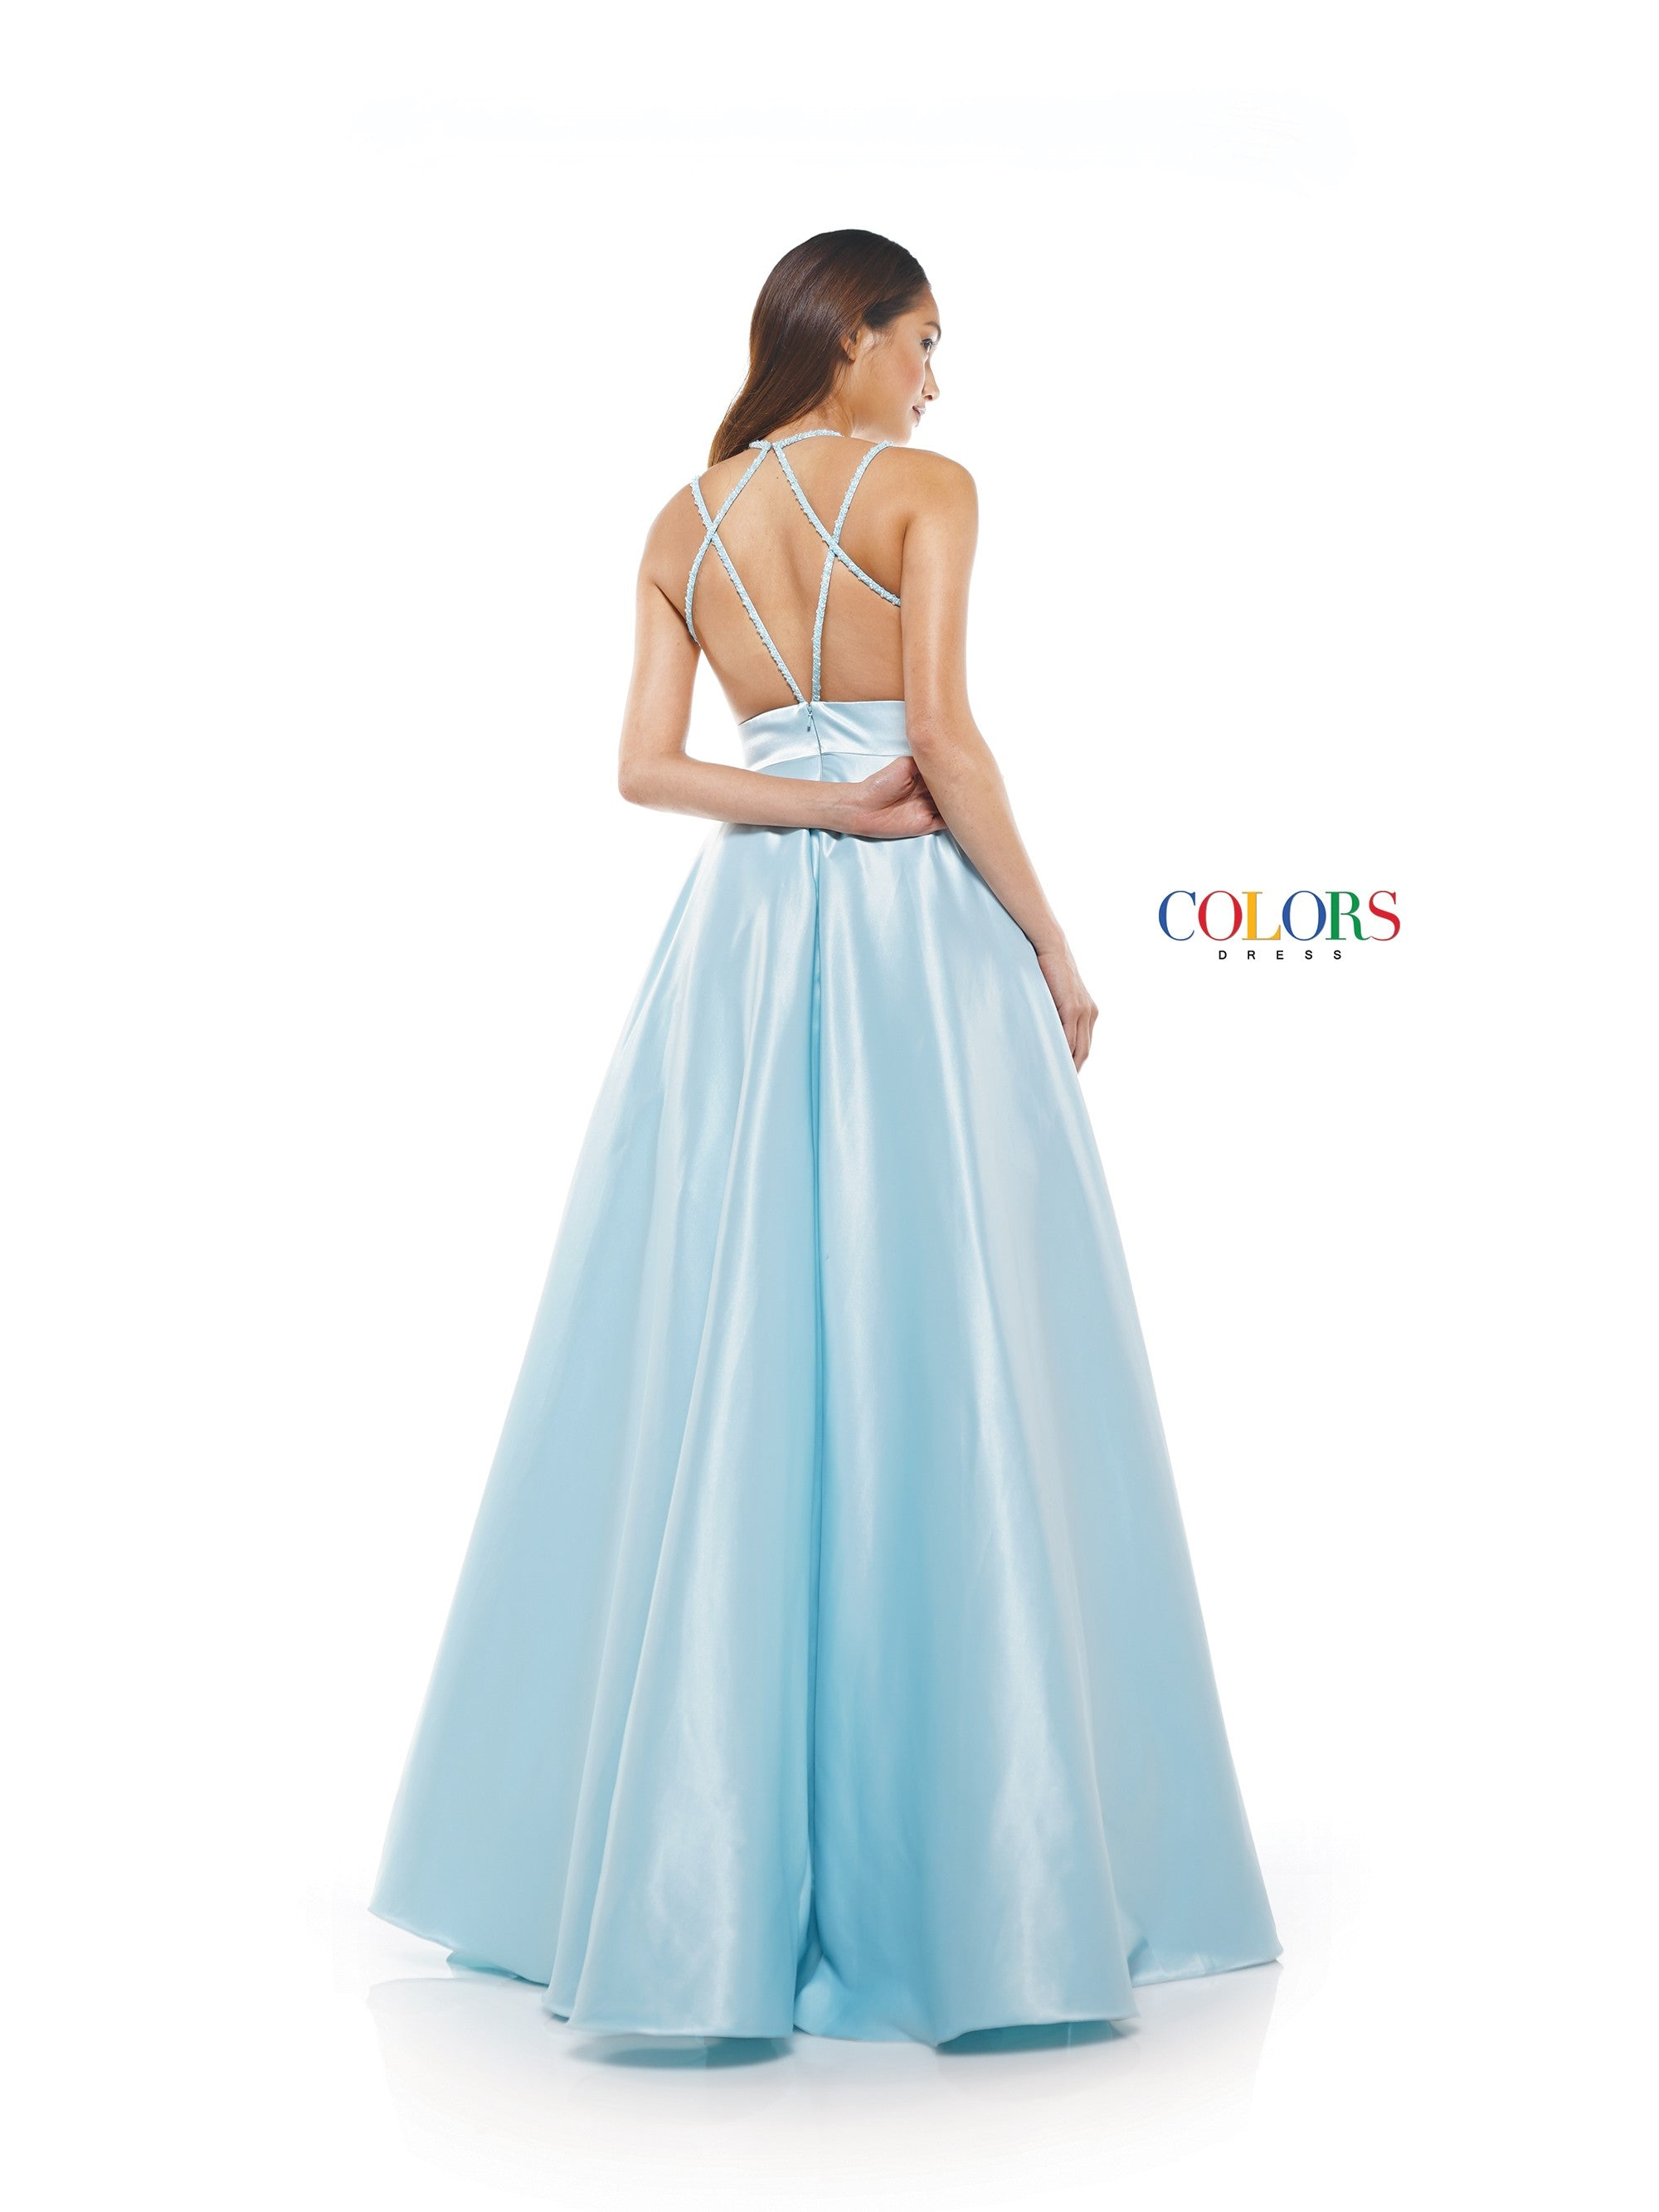 2221 - high neck A line satin dress with criss cross open back, pockets